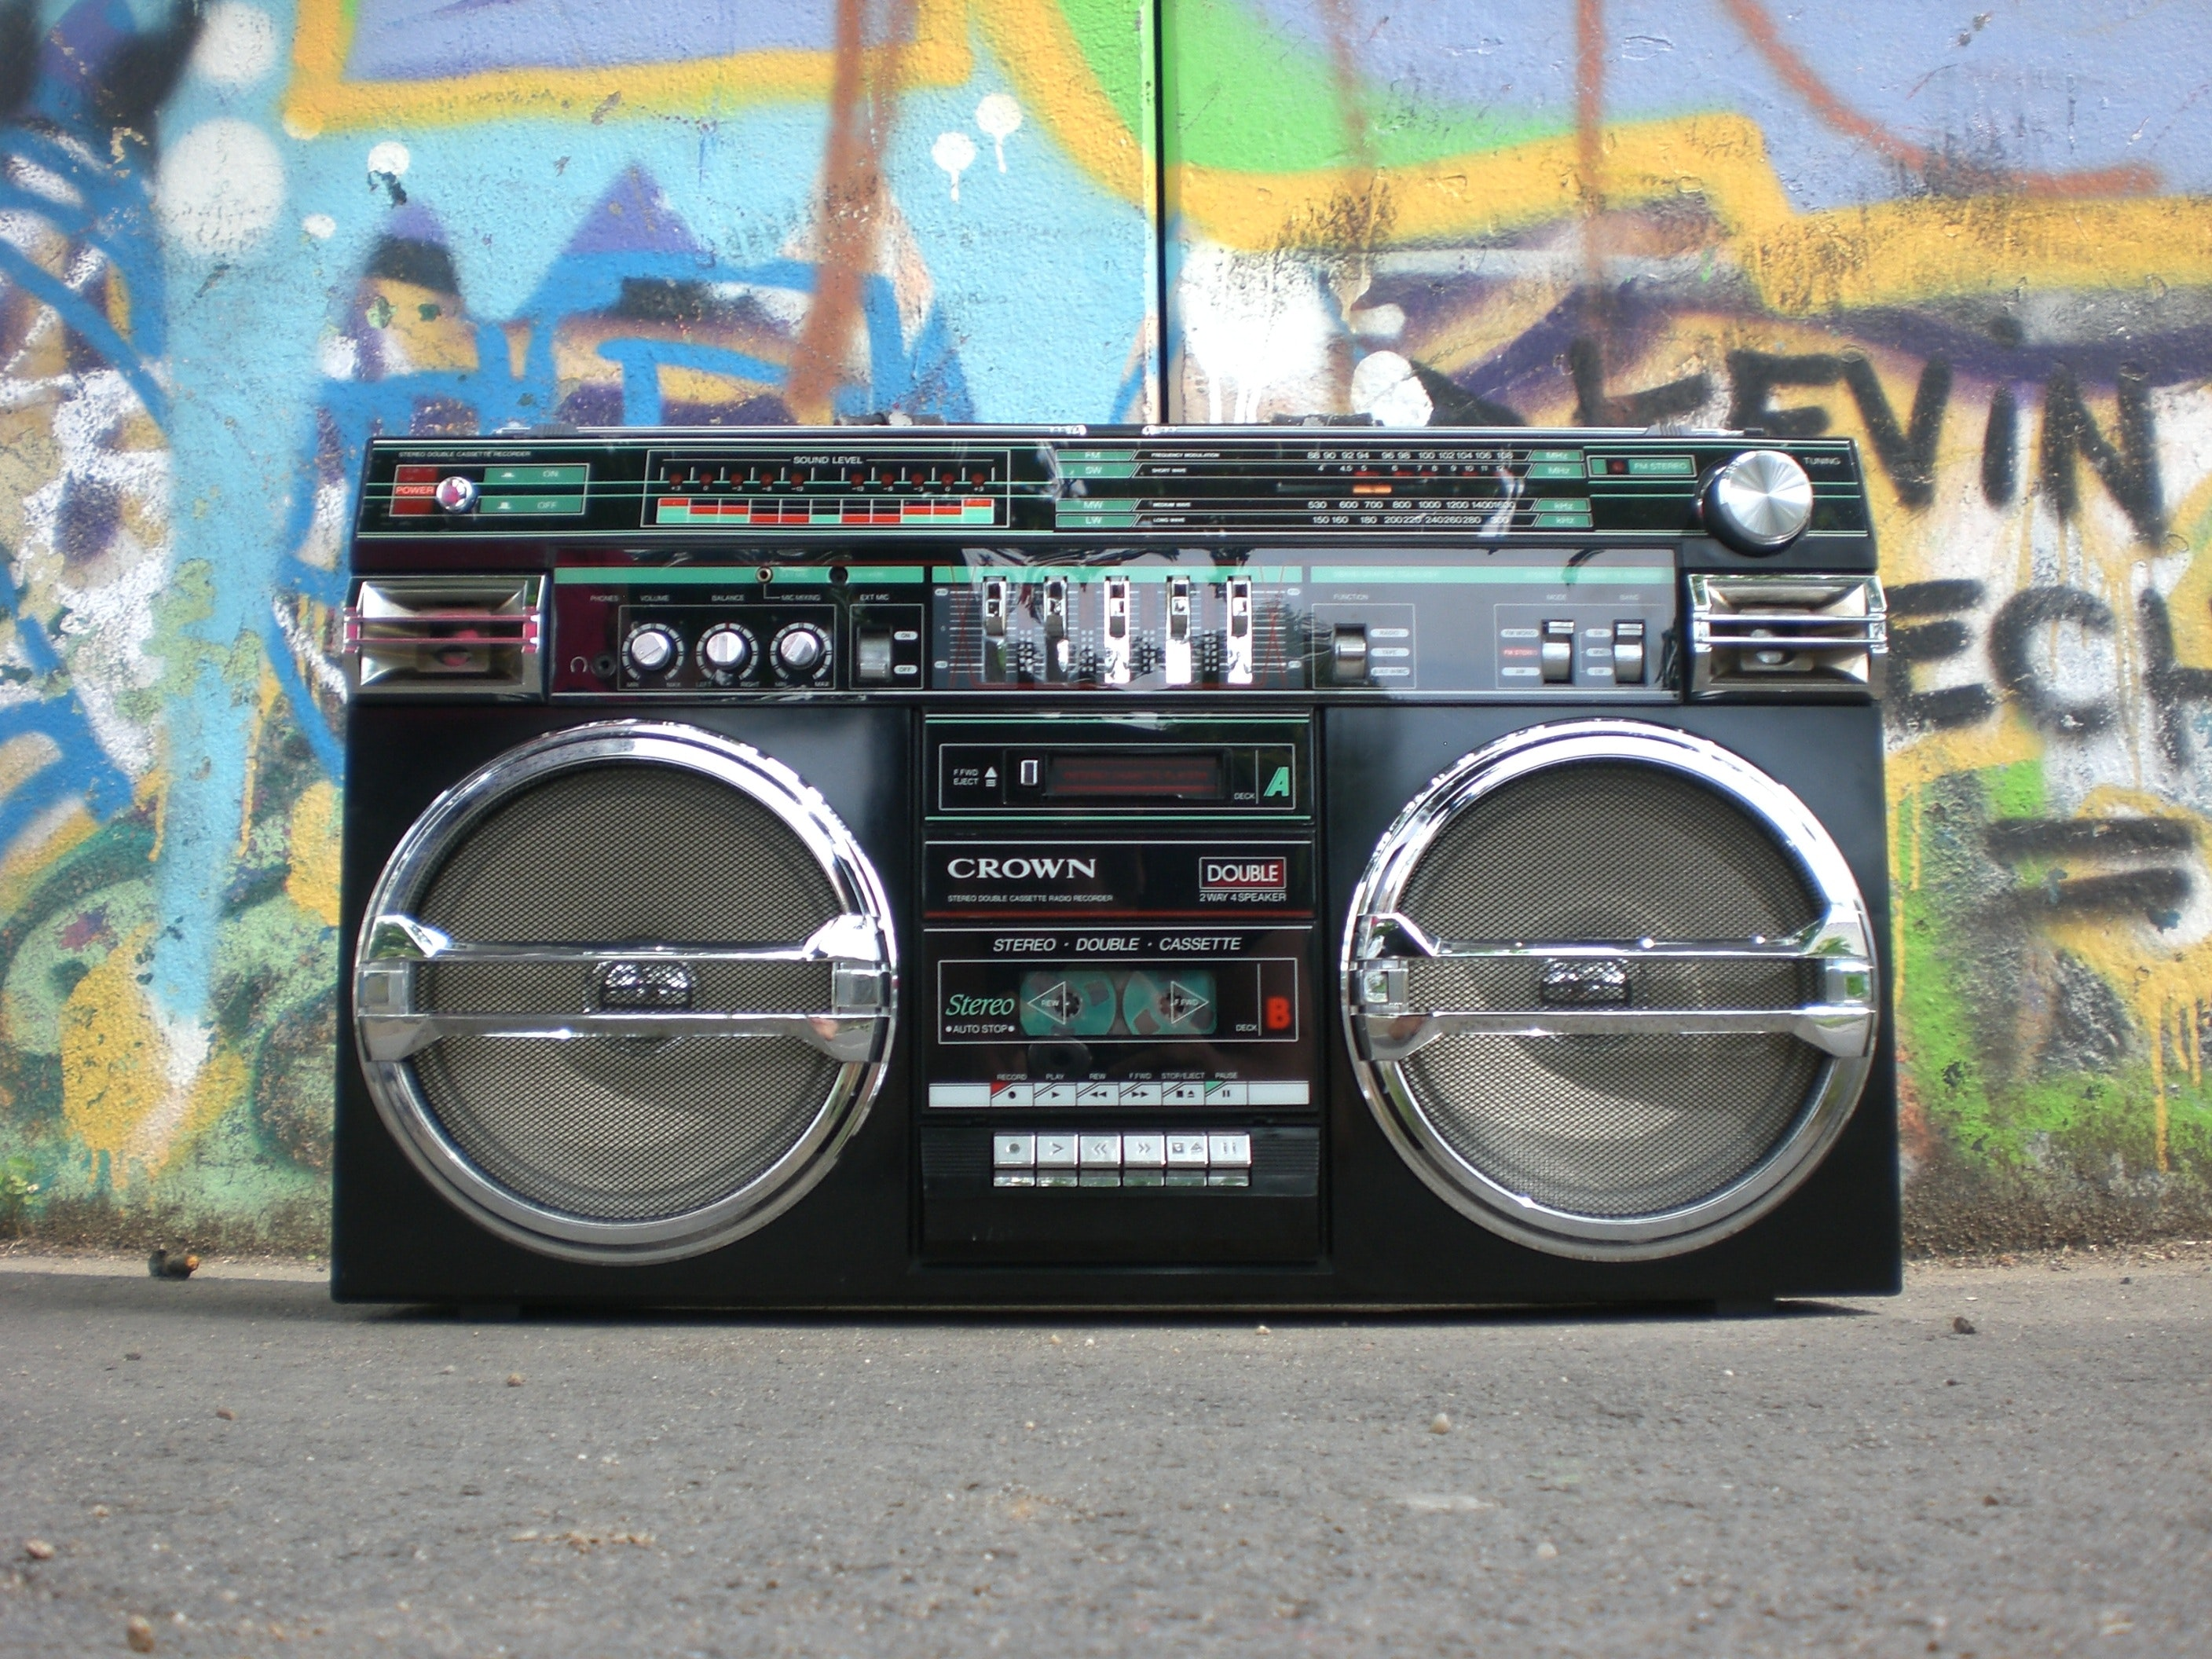 Black and silver cassette player photo